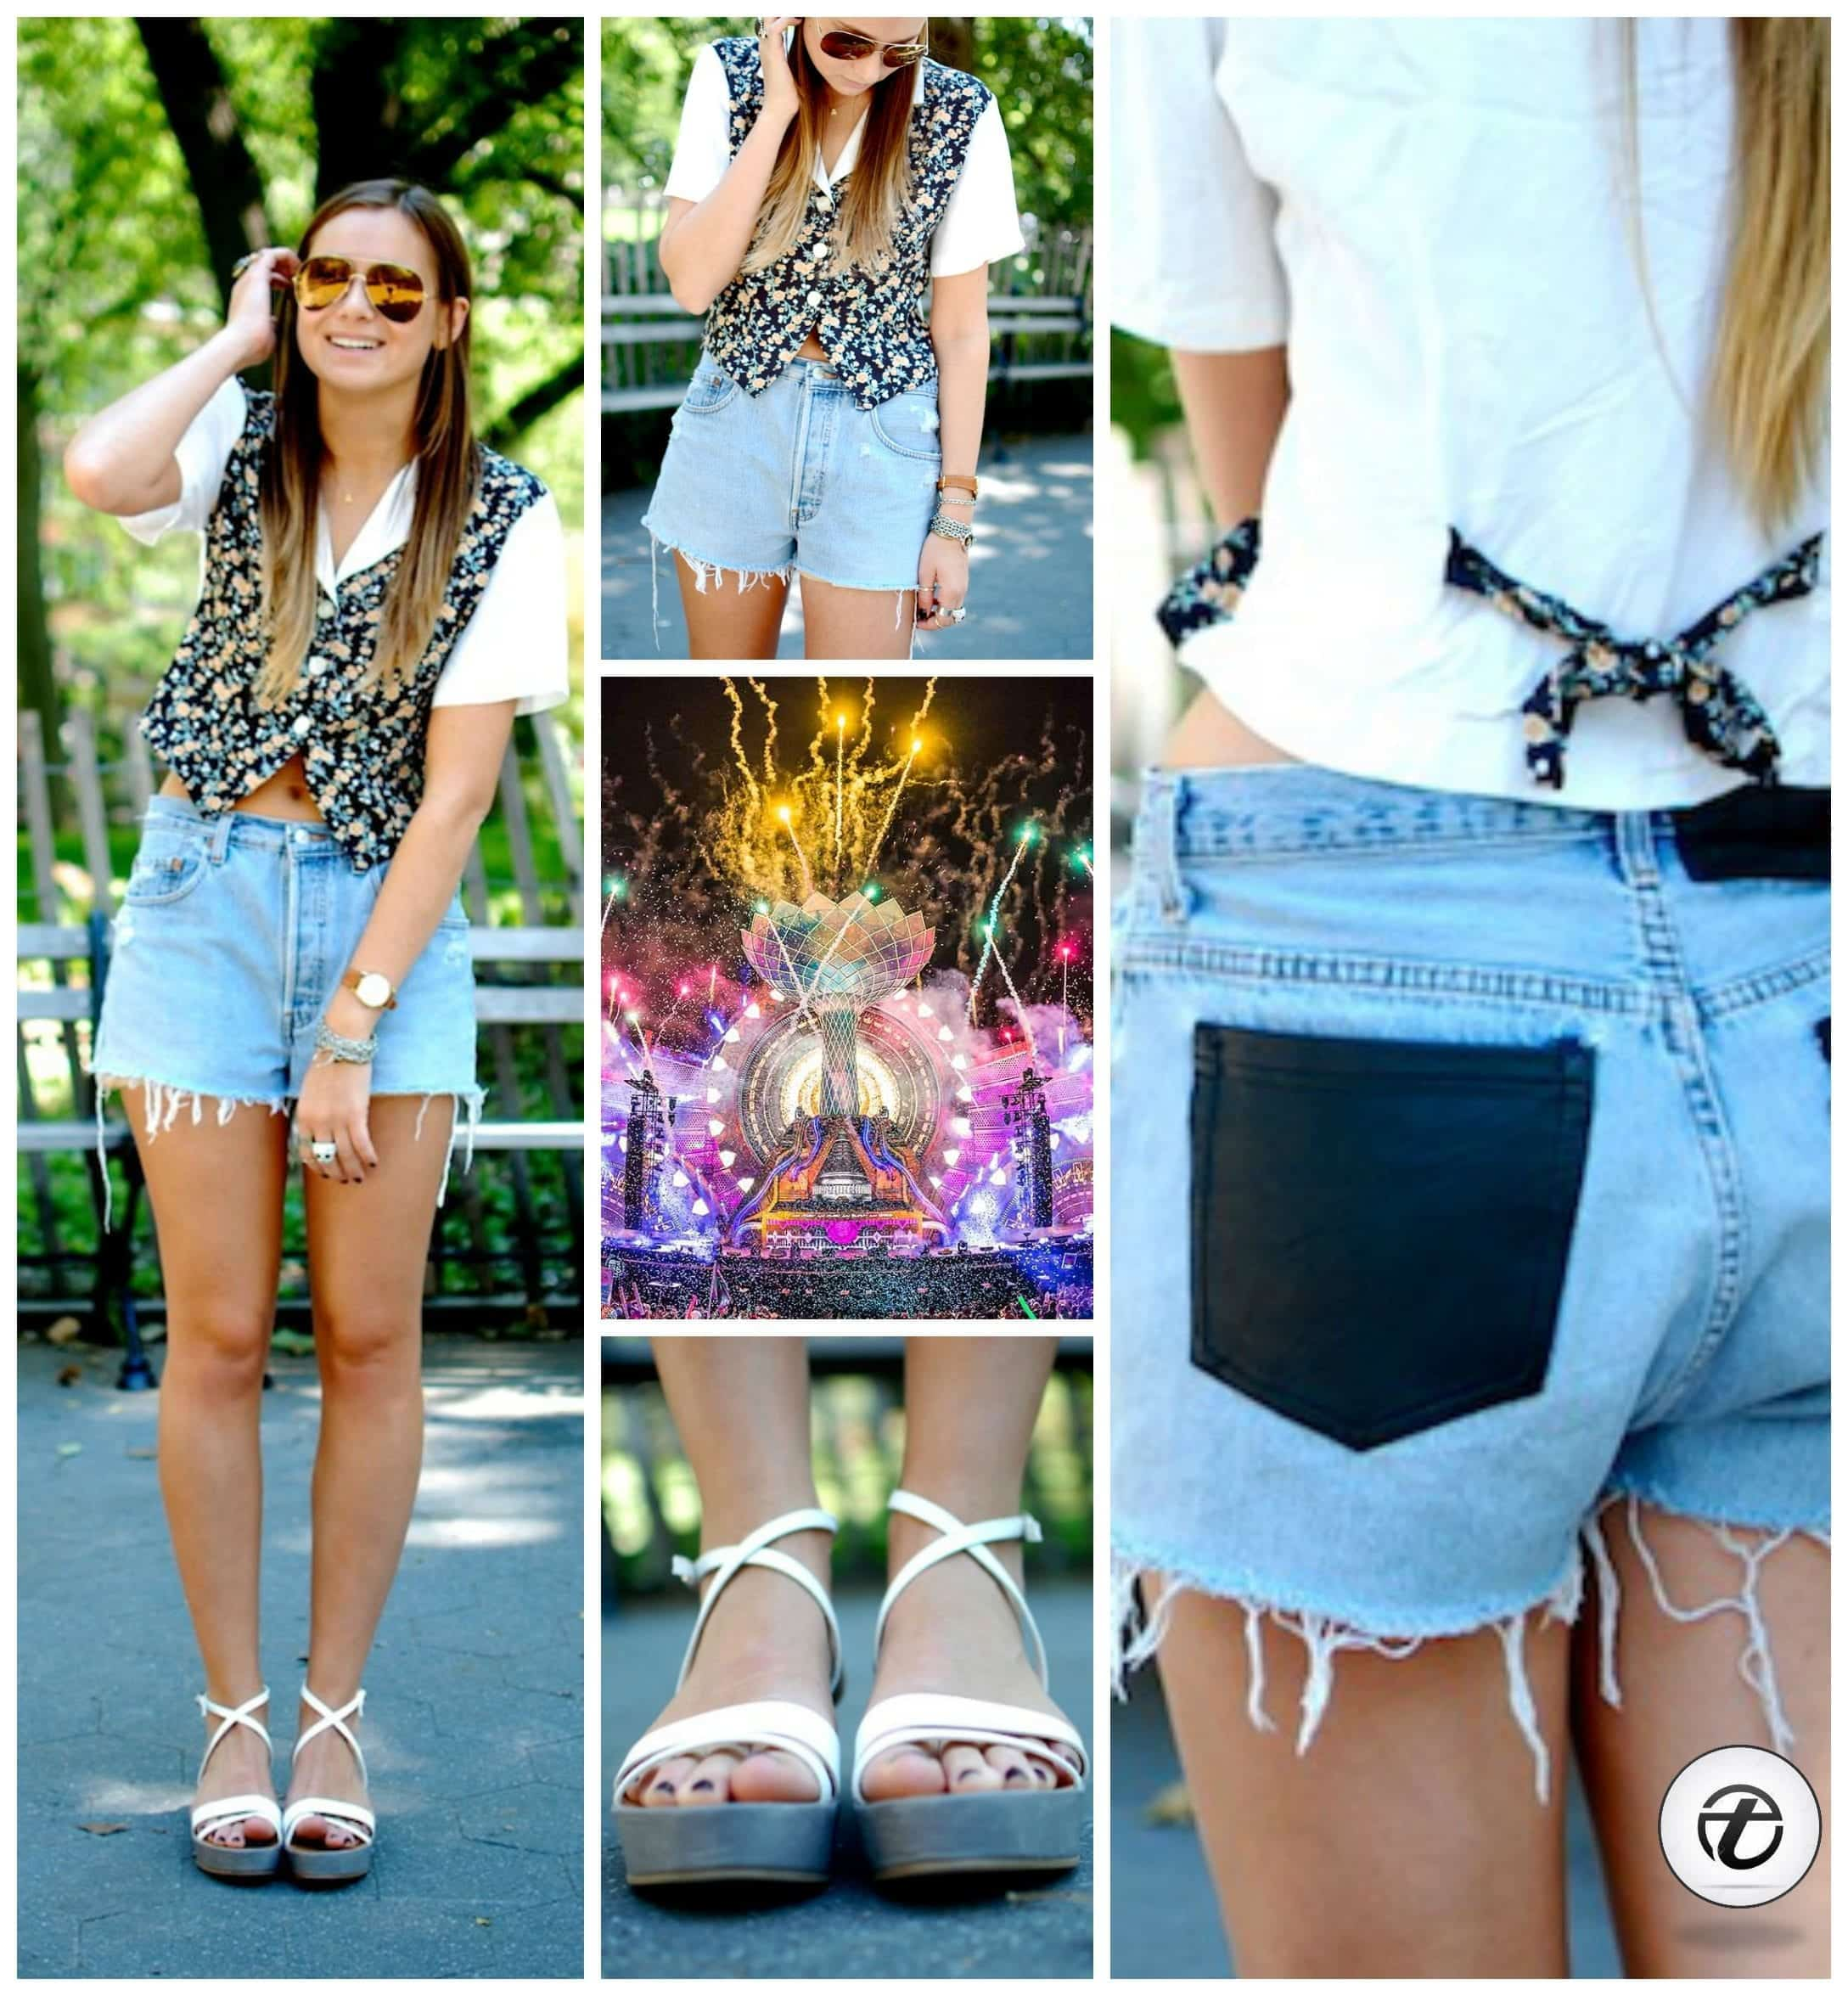 Girls Carnival Outfits Ideas 15 Outfits To Wear At Carnival